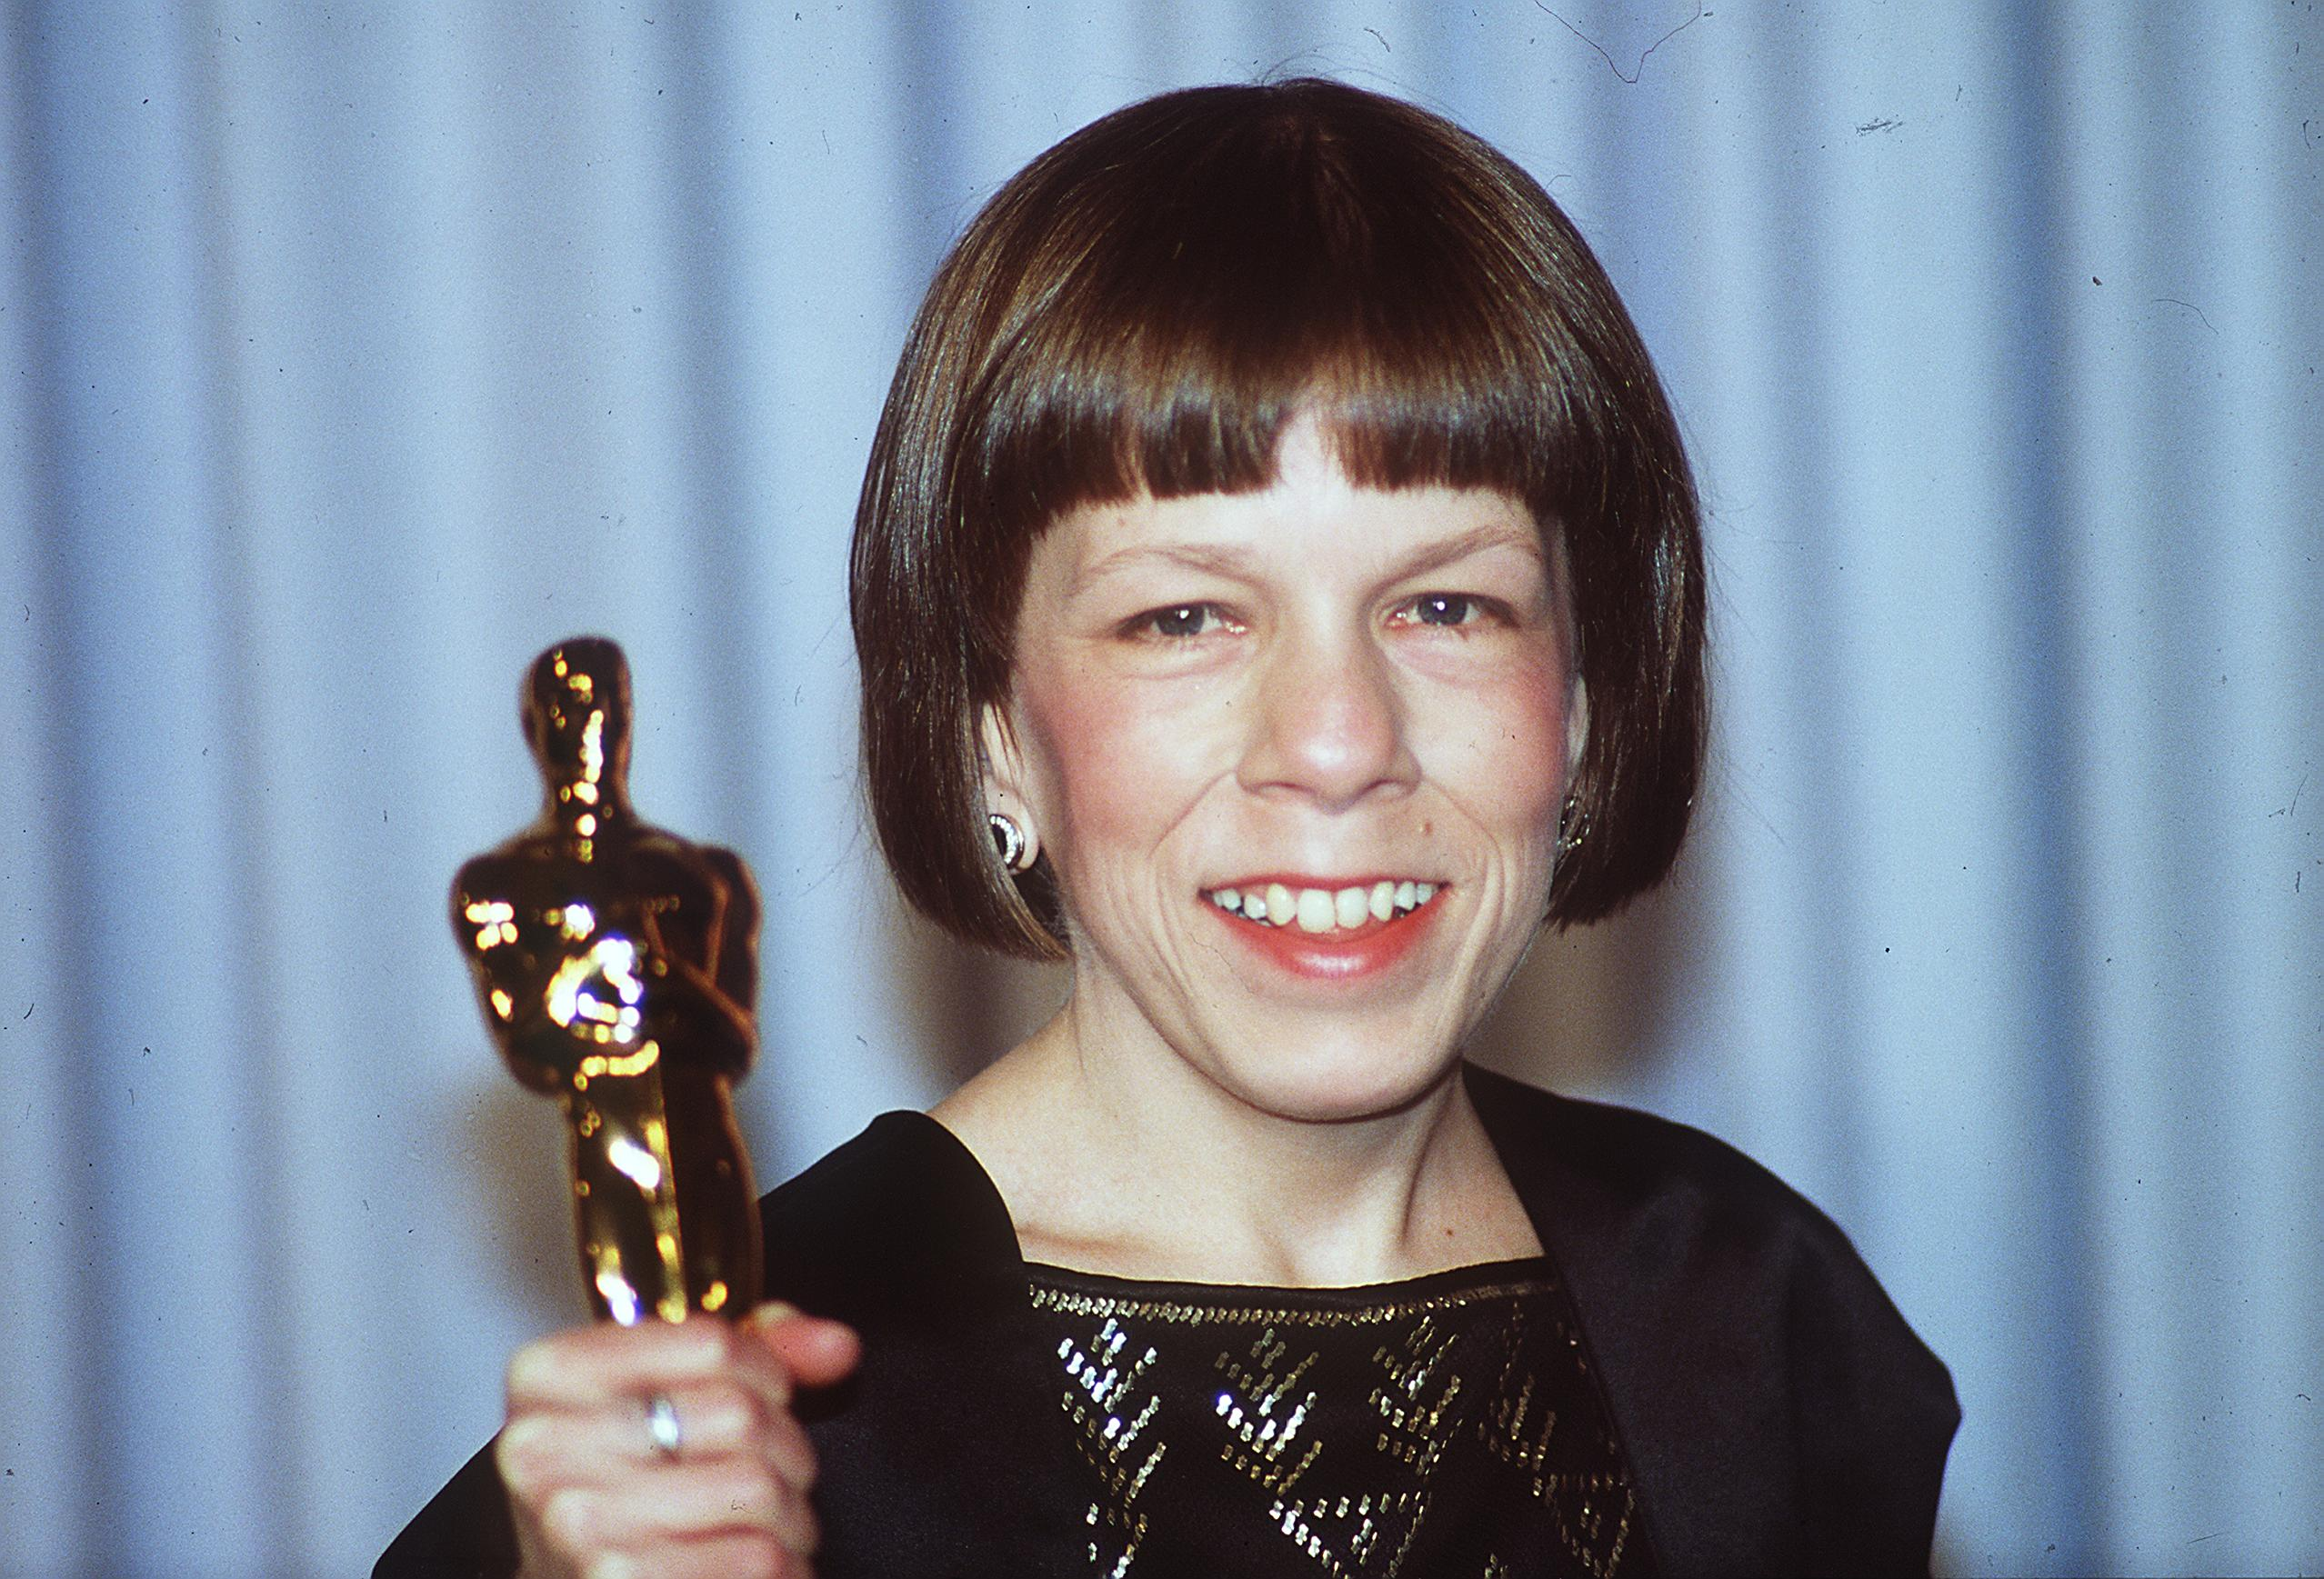 Image Credit: Getty Images / Actress and Oscar winner, Linda Hunt poses for a photograph.